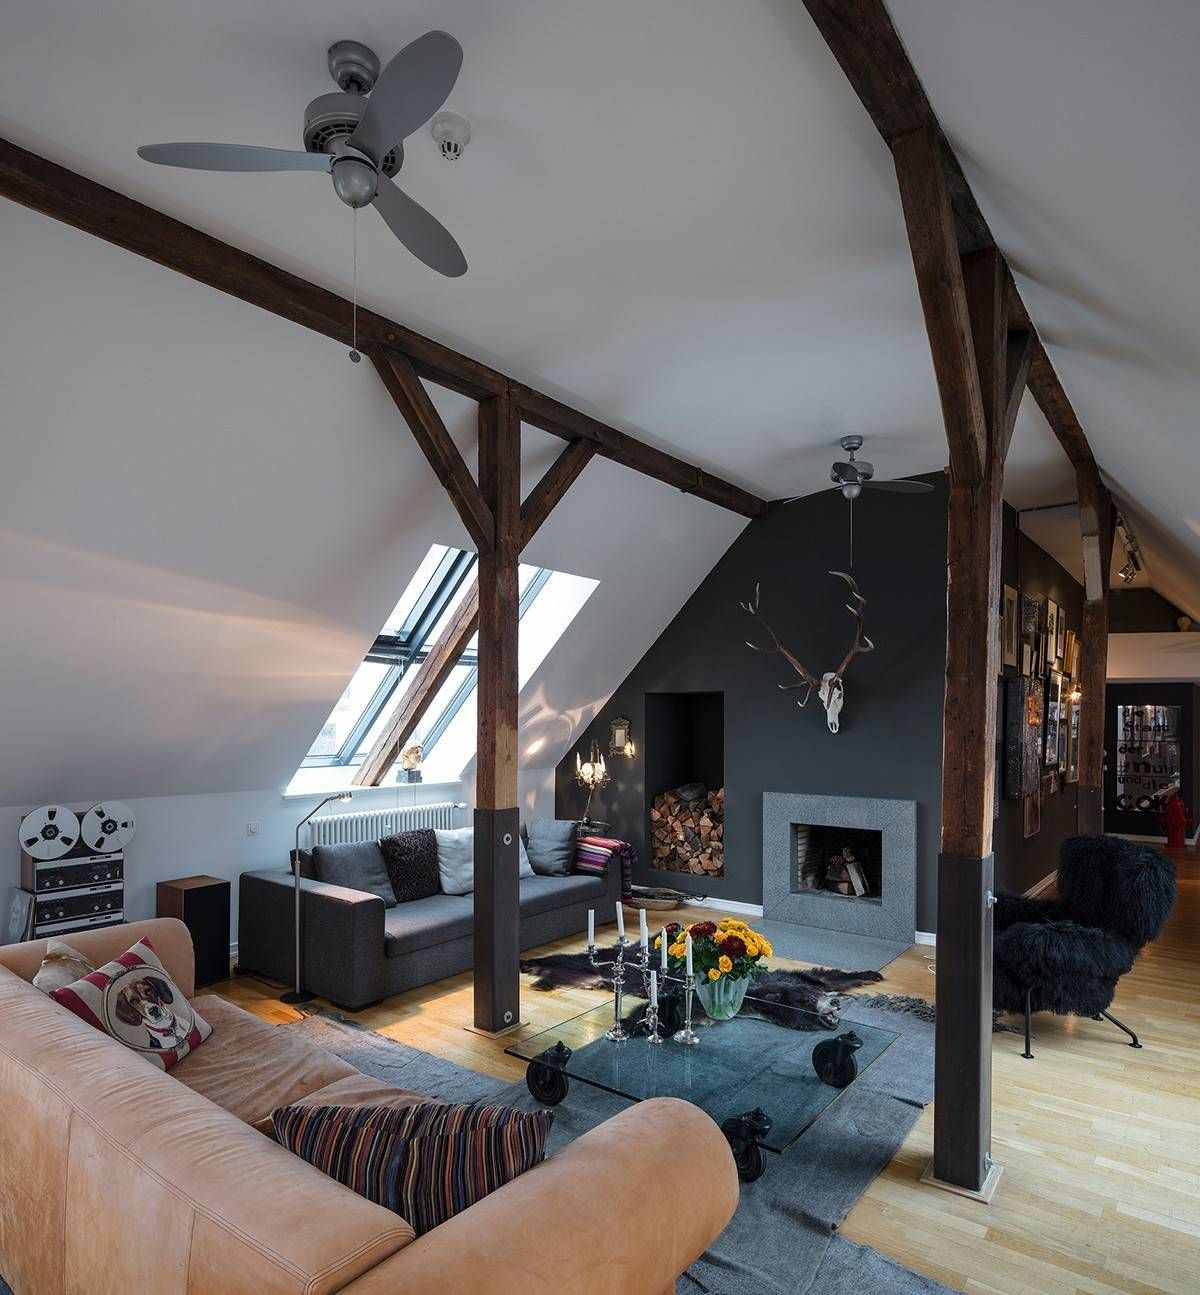 Wooden-beams-and-skylight-add-to-the-appeal-of-this-small-rustic-style-living-room-31097